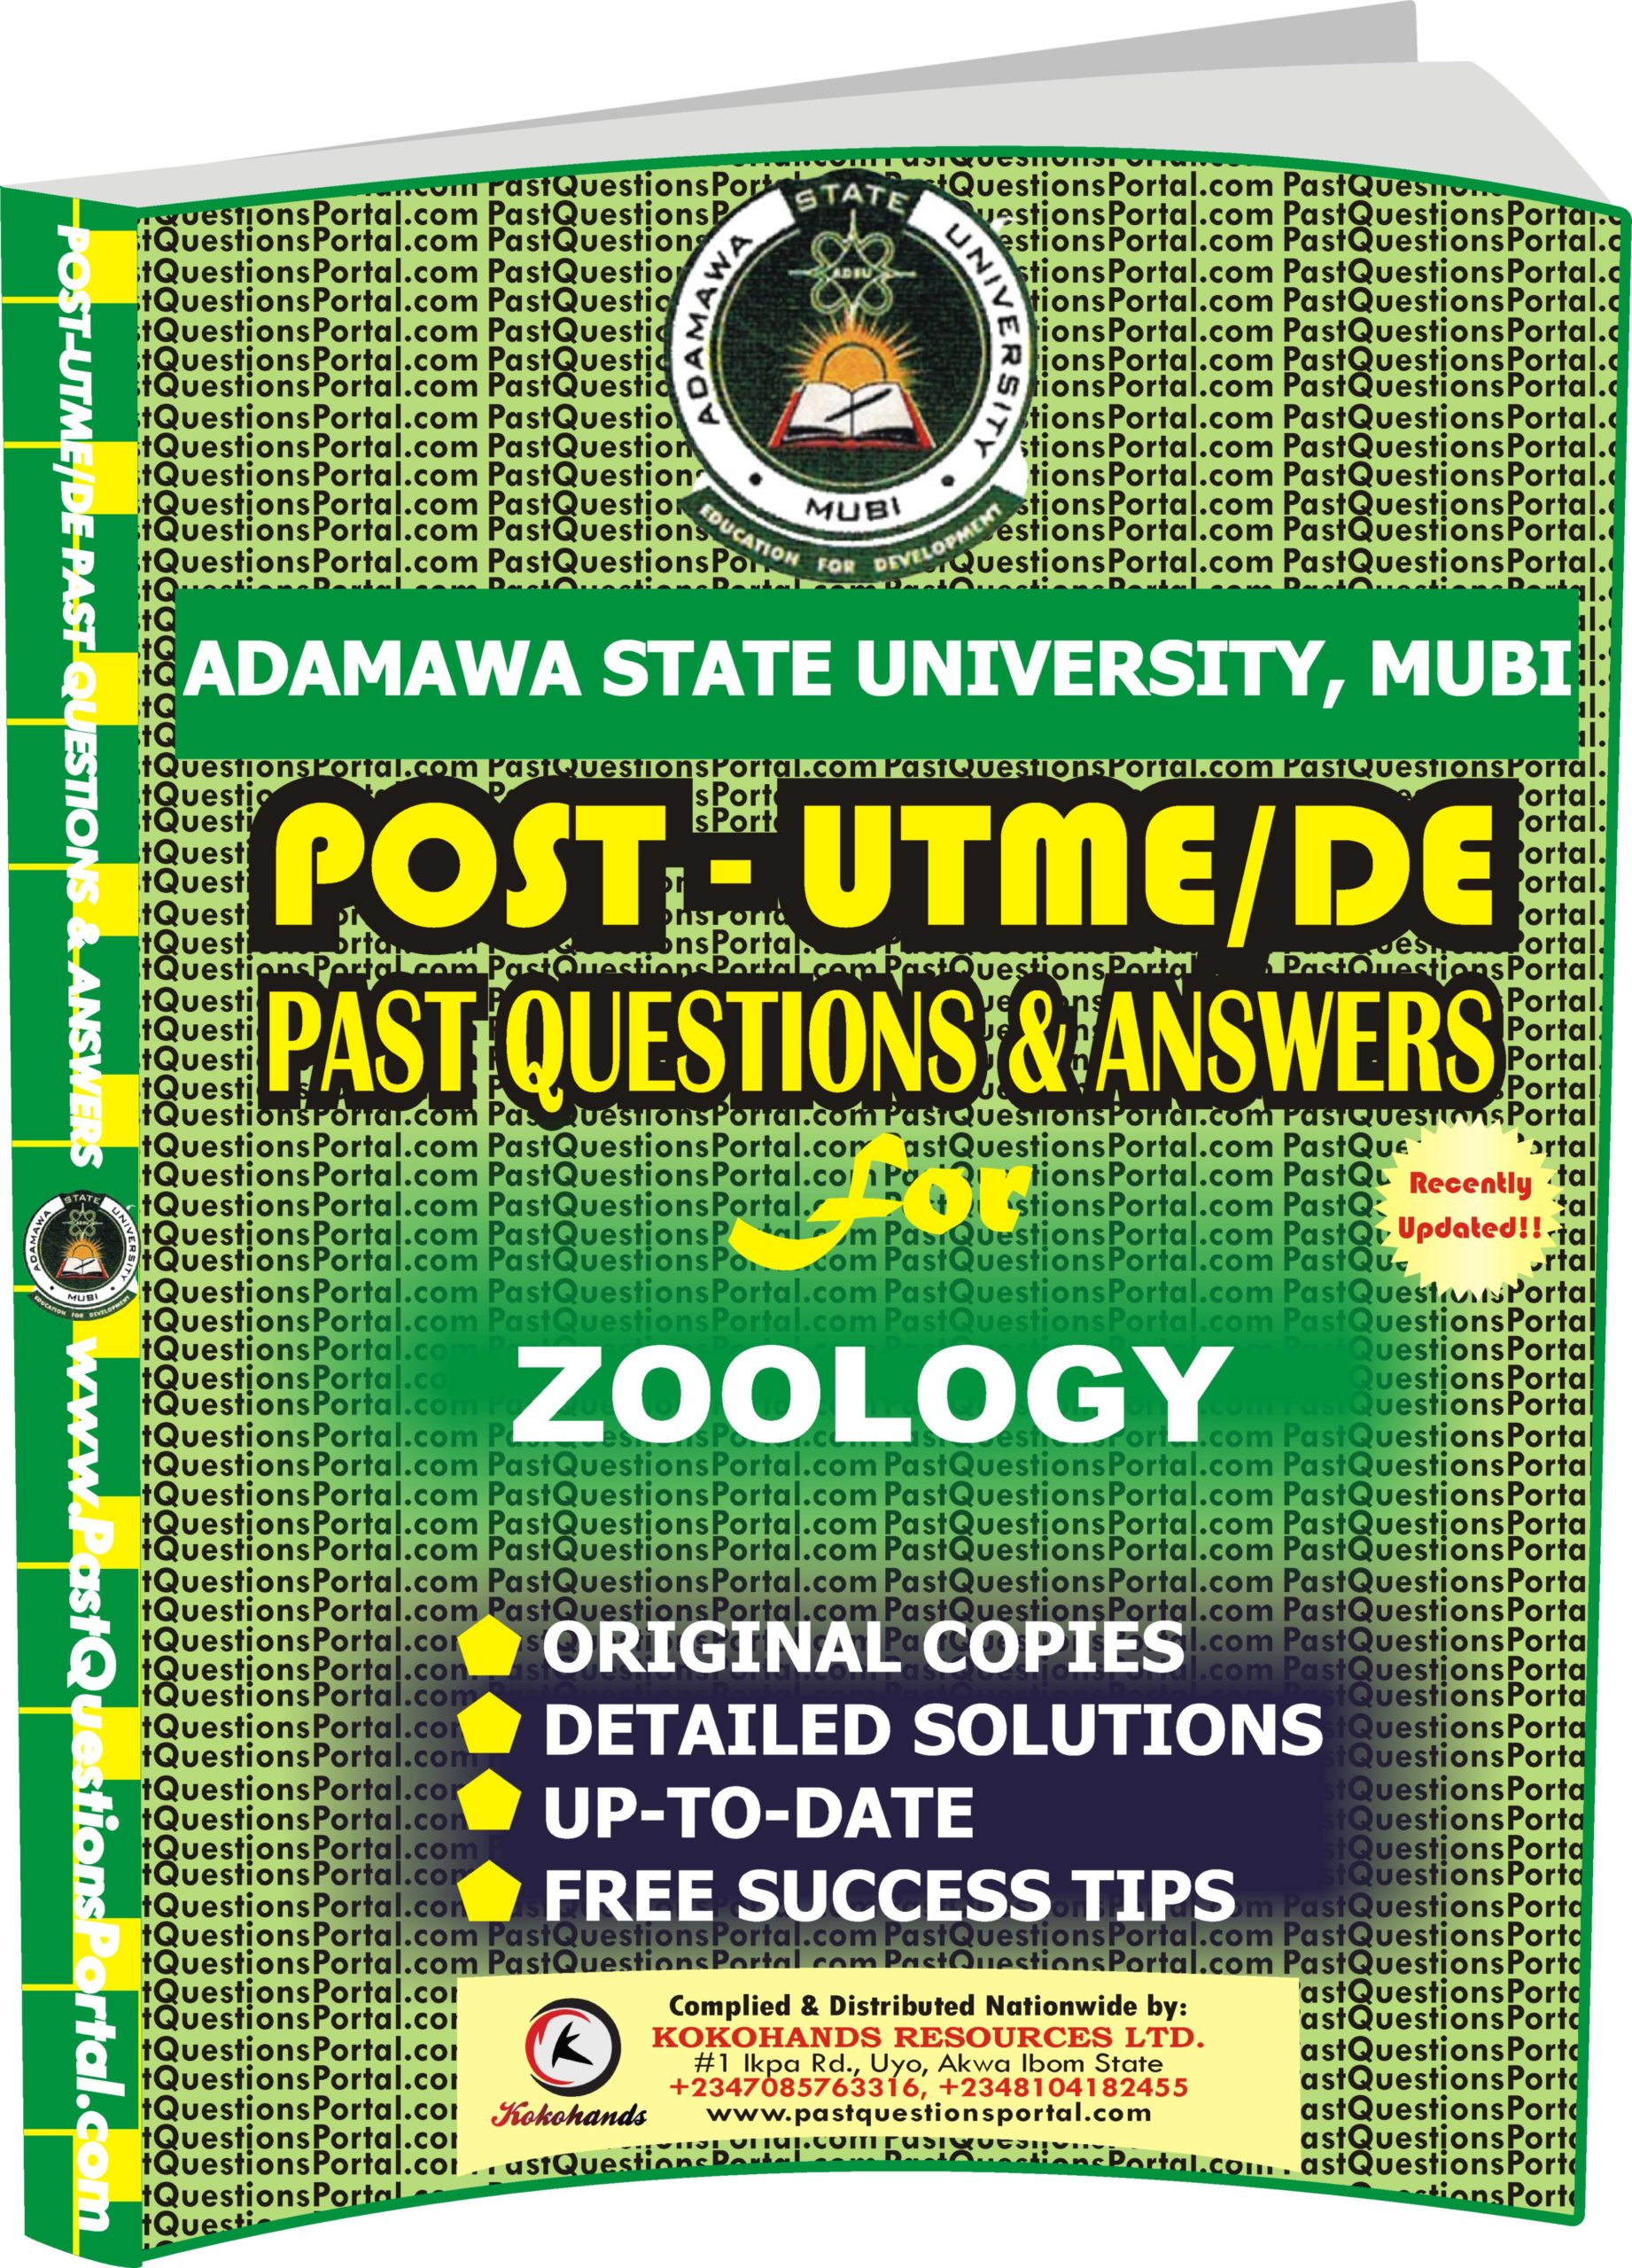 ADSU Post UTME Past Questions for ZOOLOGY